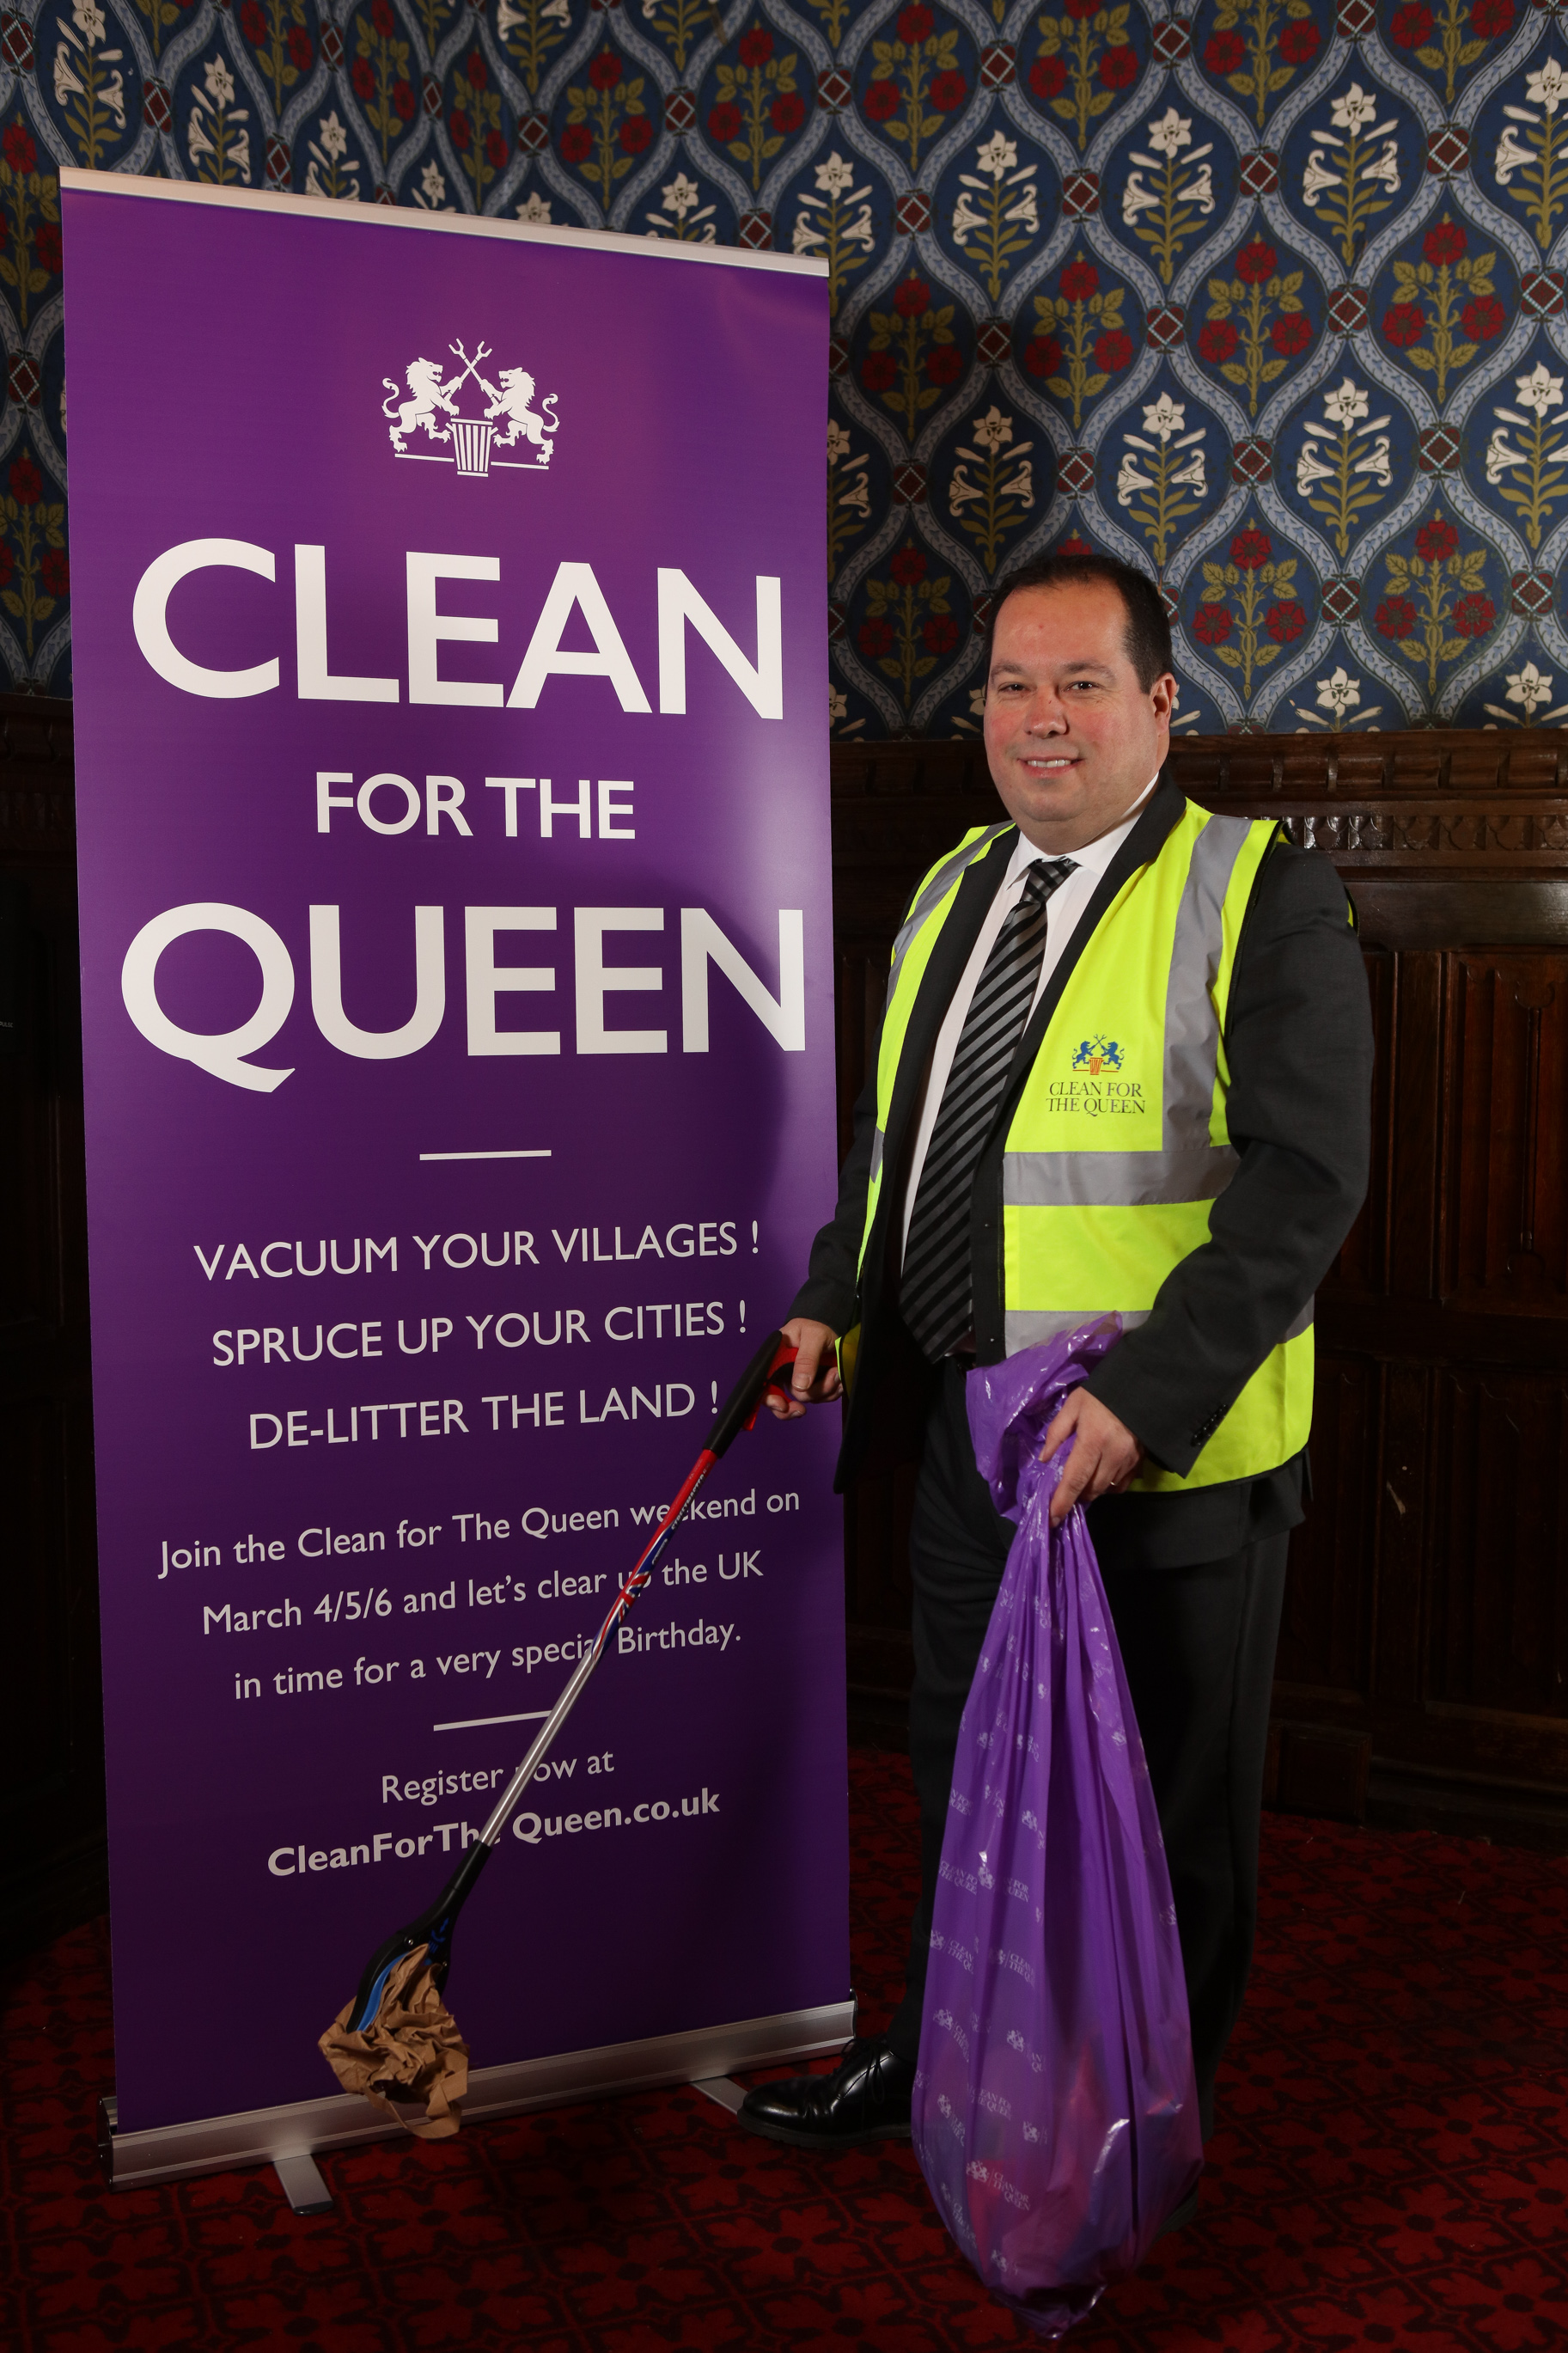 Clean_for_the_Queen_1.jpg